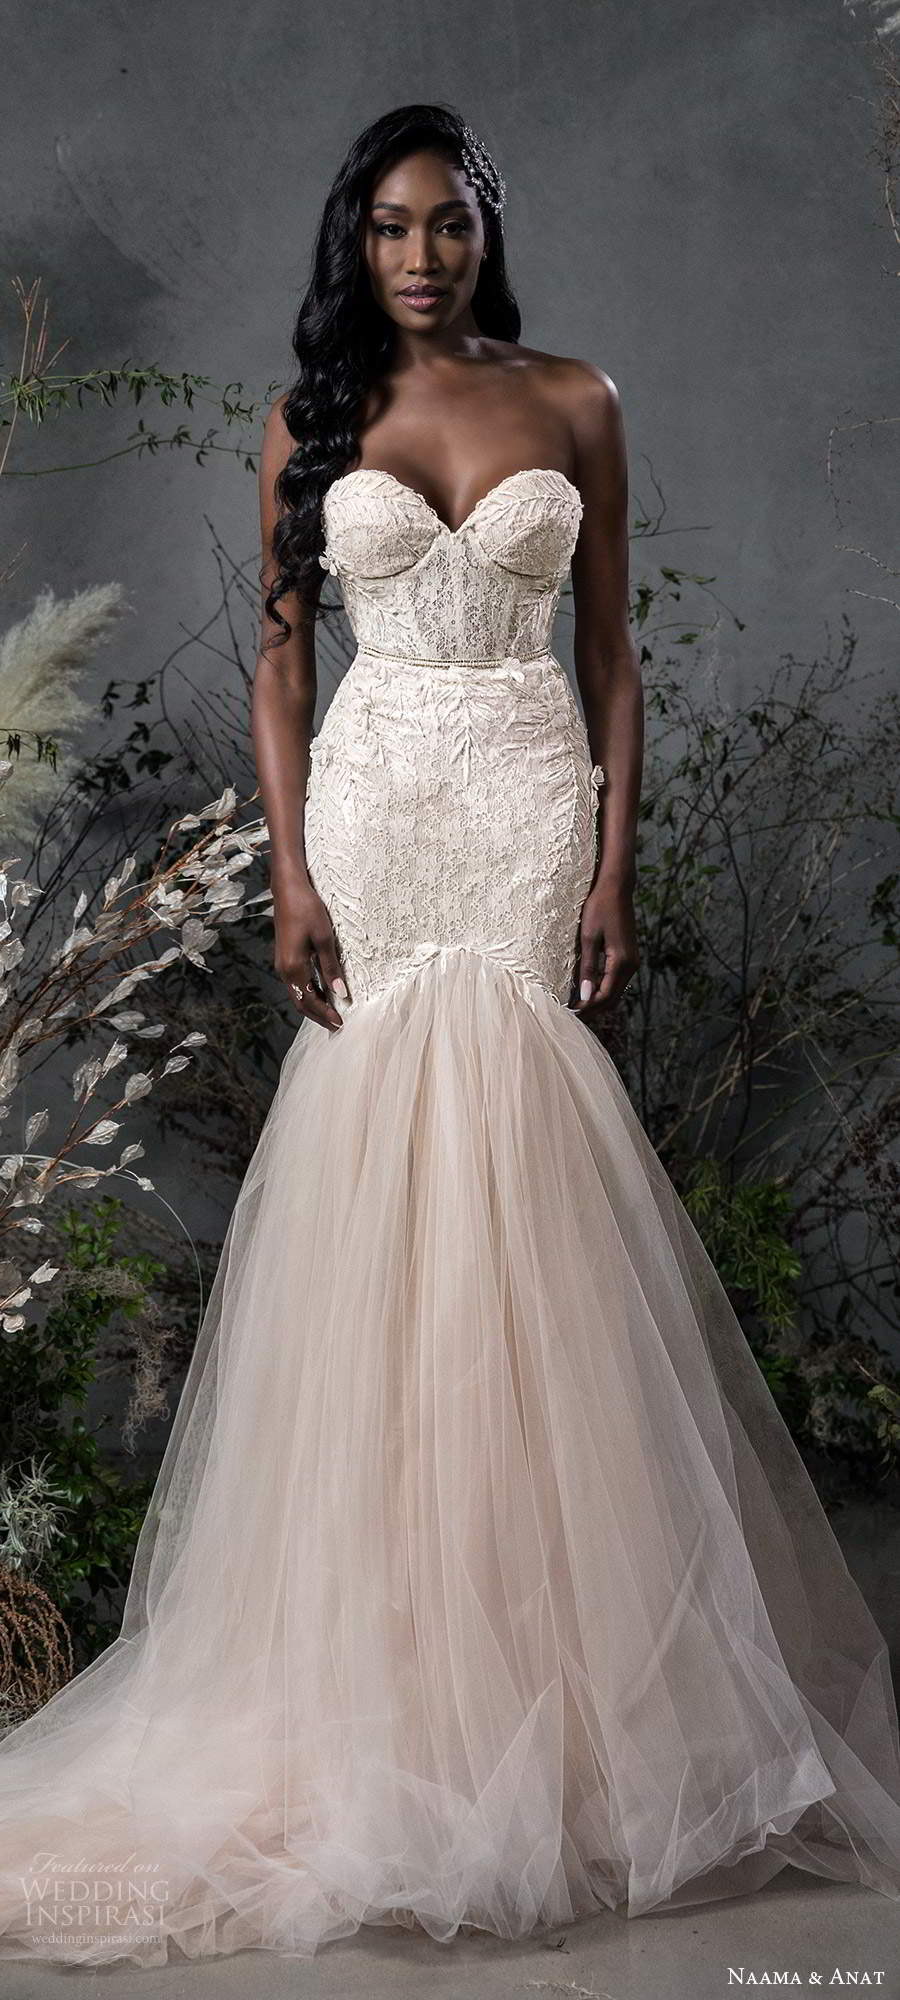 naama anat fall 2020 bridal strapless sweetheart neckline fully embellished fit flare mermaid wedding dress chapel train blush (11) lv